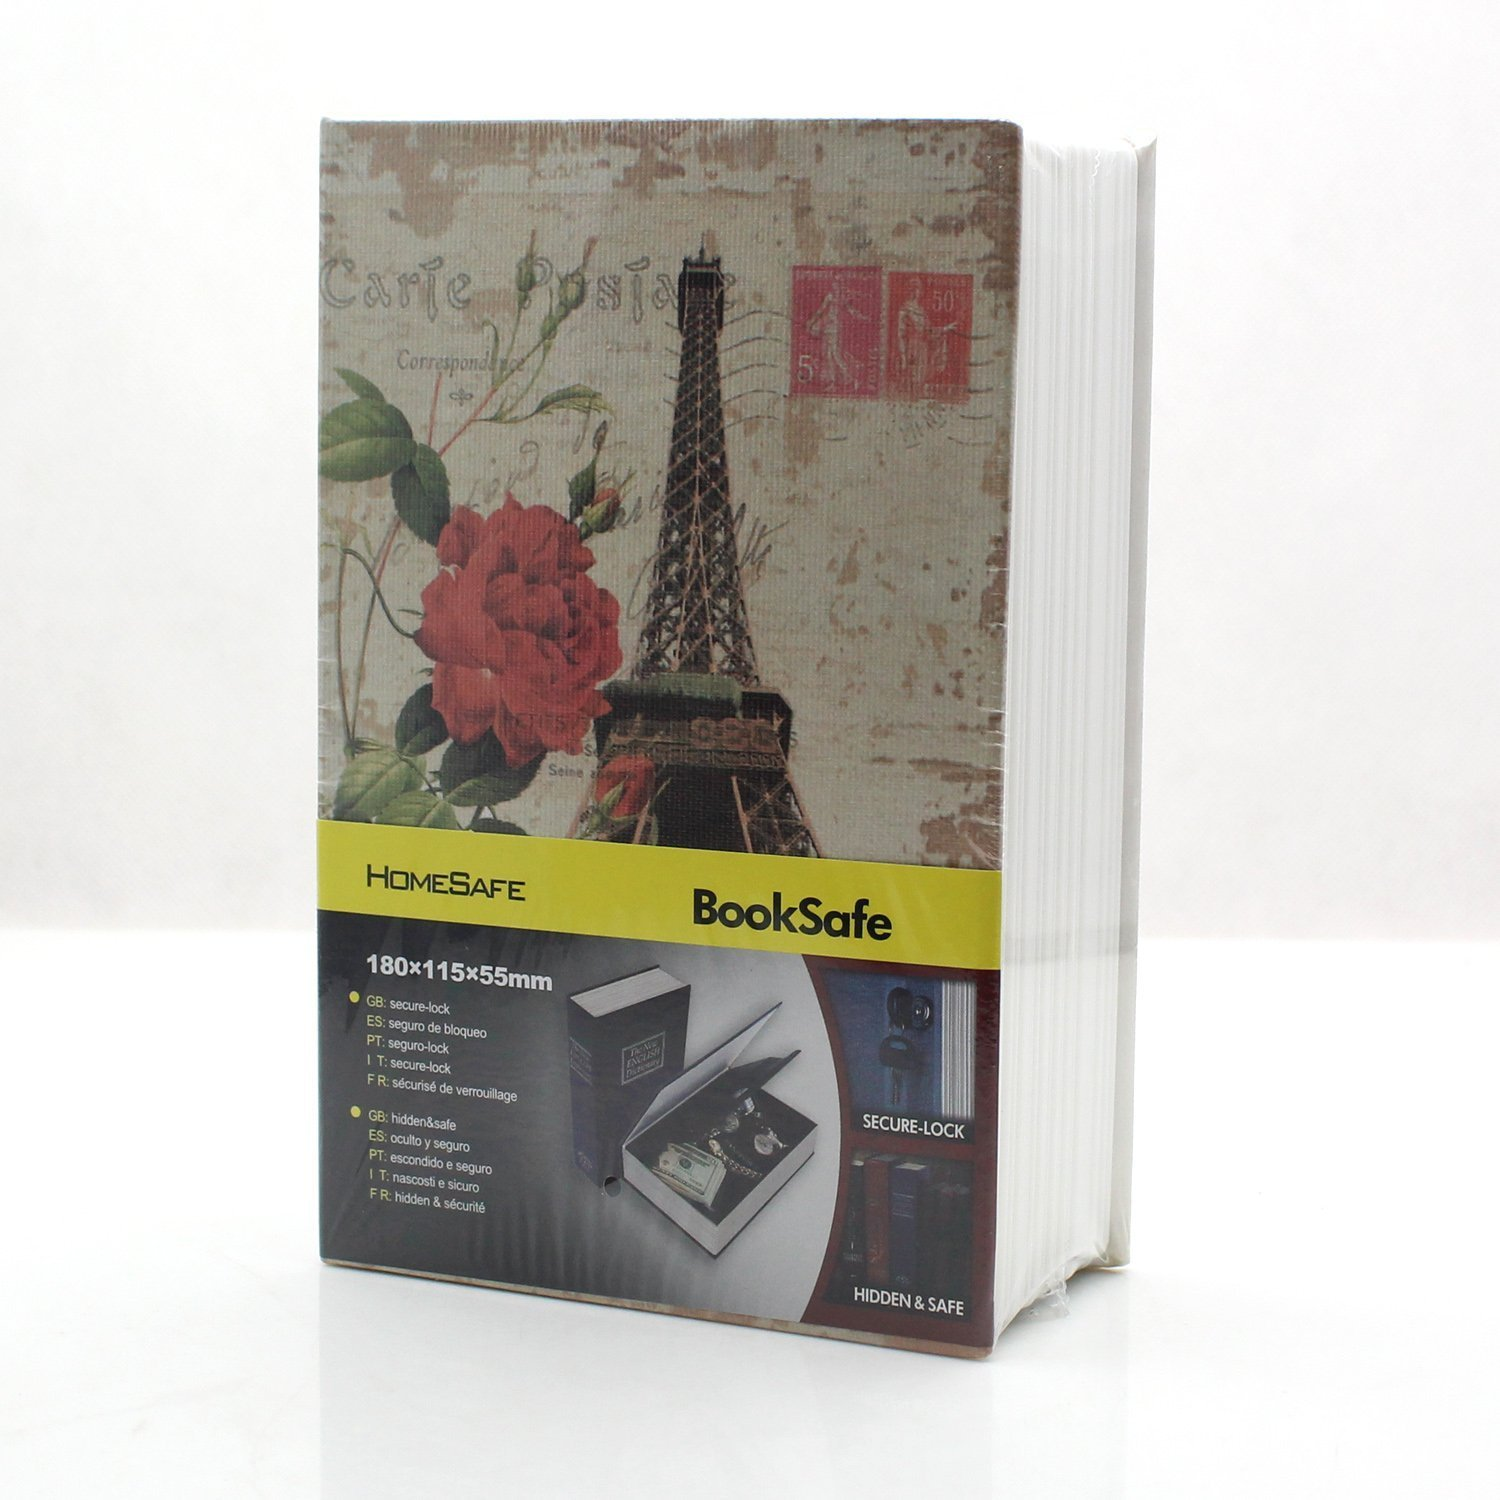 Book Safe - Riipoo M Size Eiffel Tower Pattern Book Safe, Diversion Hidden Book Safe With Inside Strong Metal Case and Key Lock (180 x 115 x 55 mm)